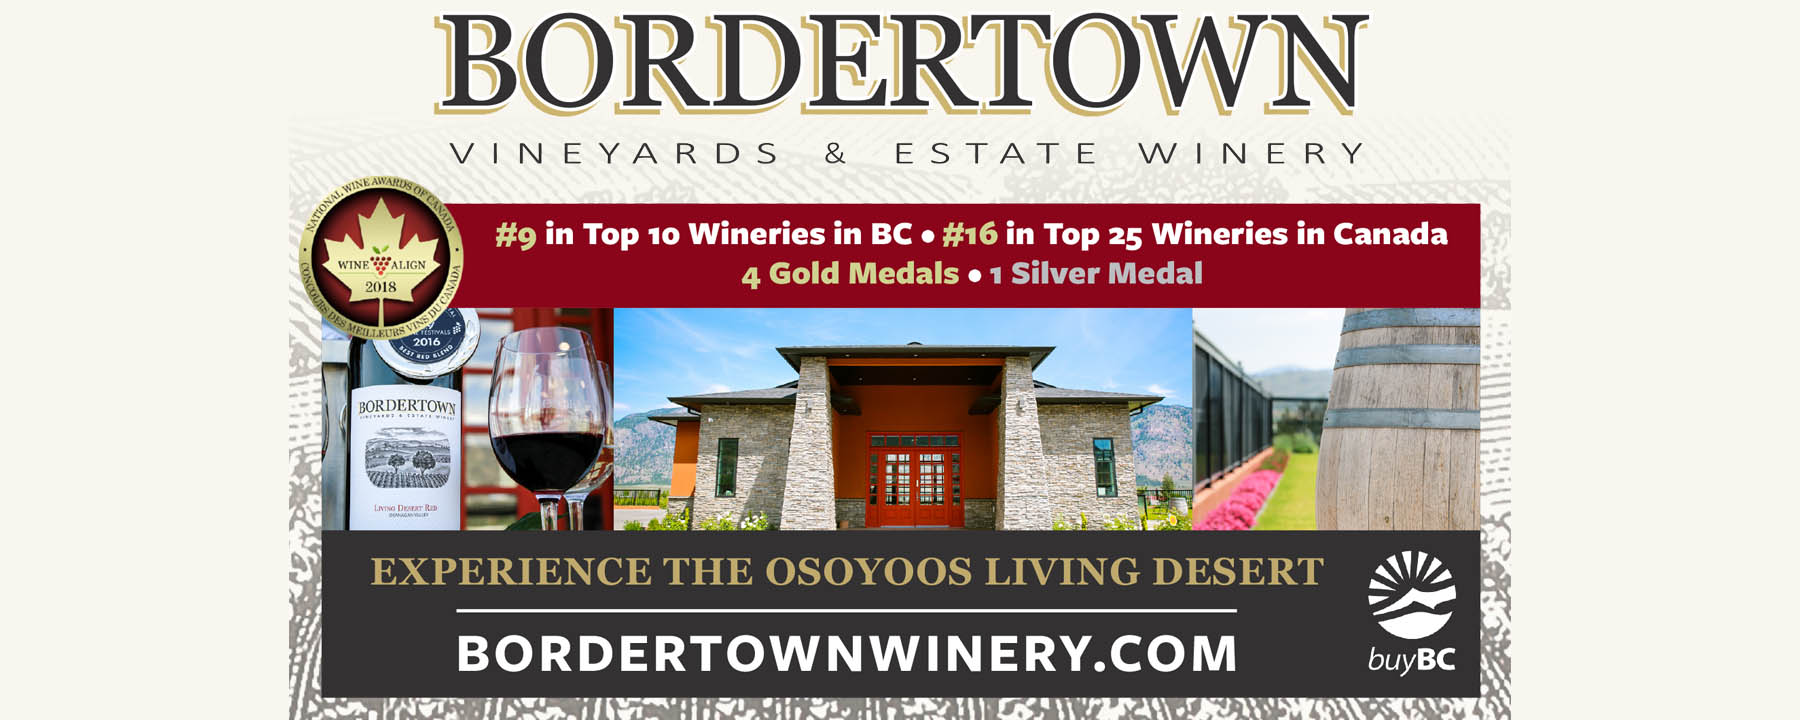 bc wine tour ad BUYBC white